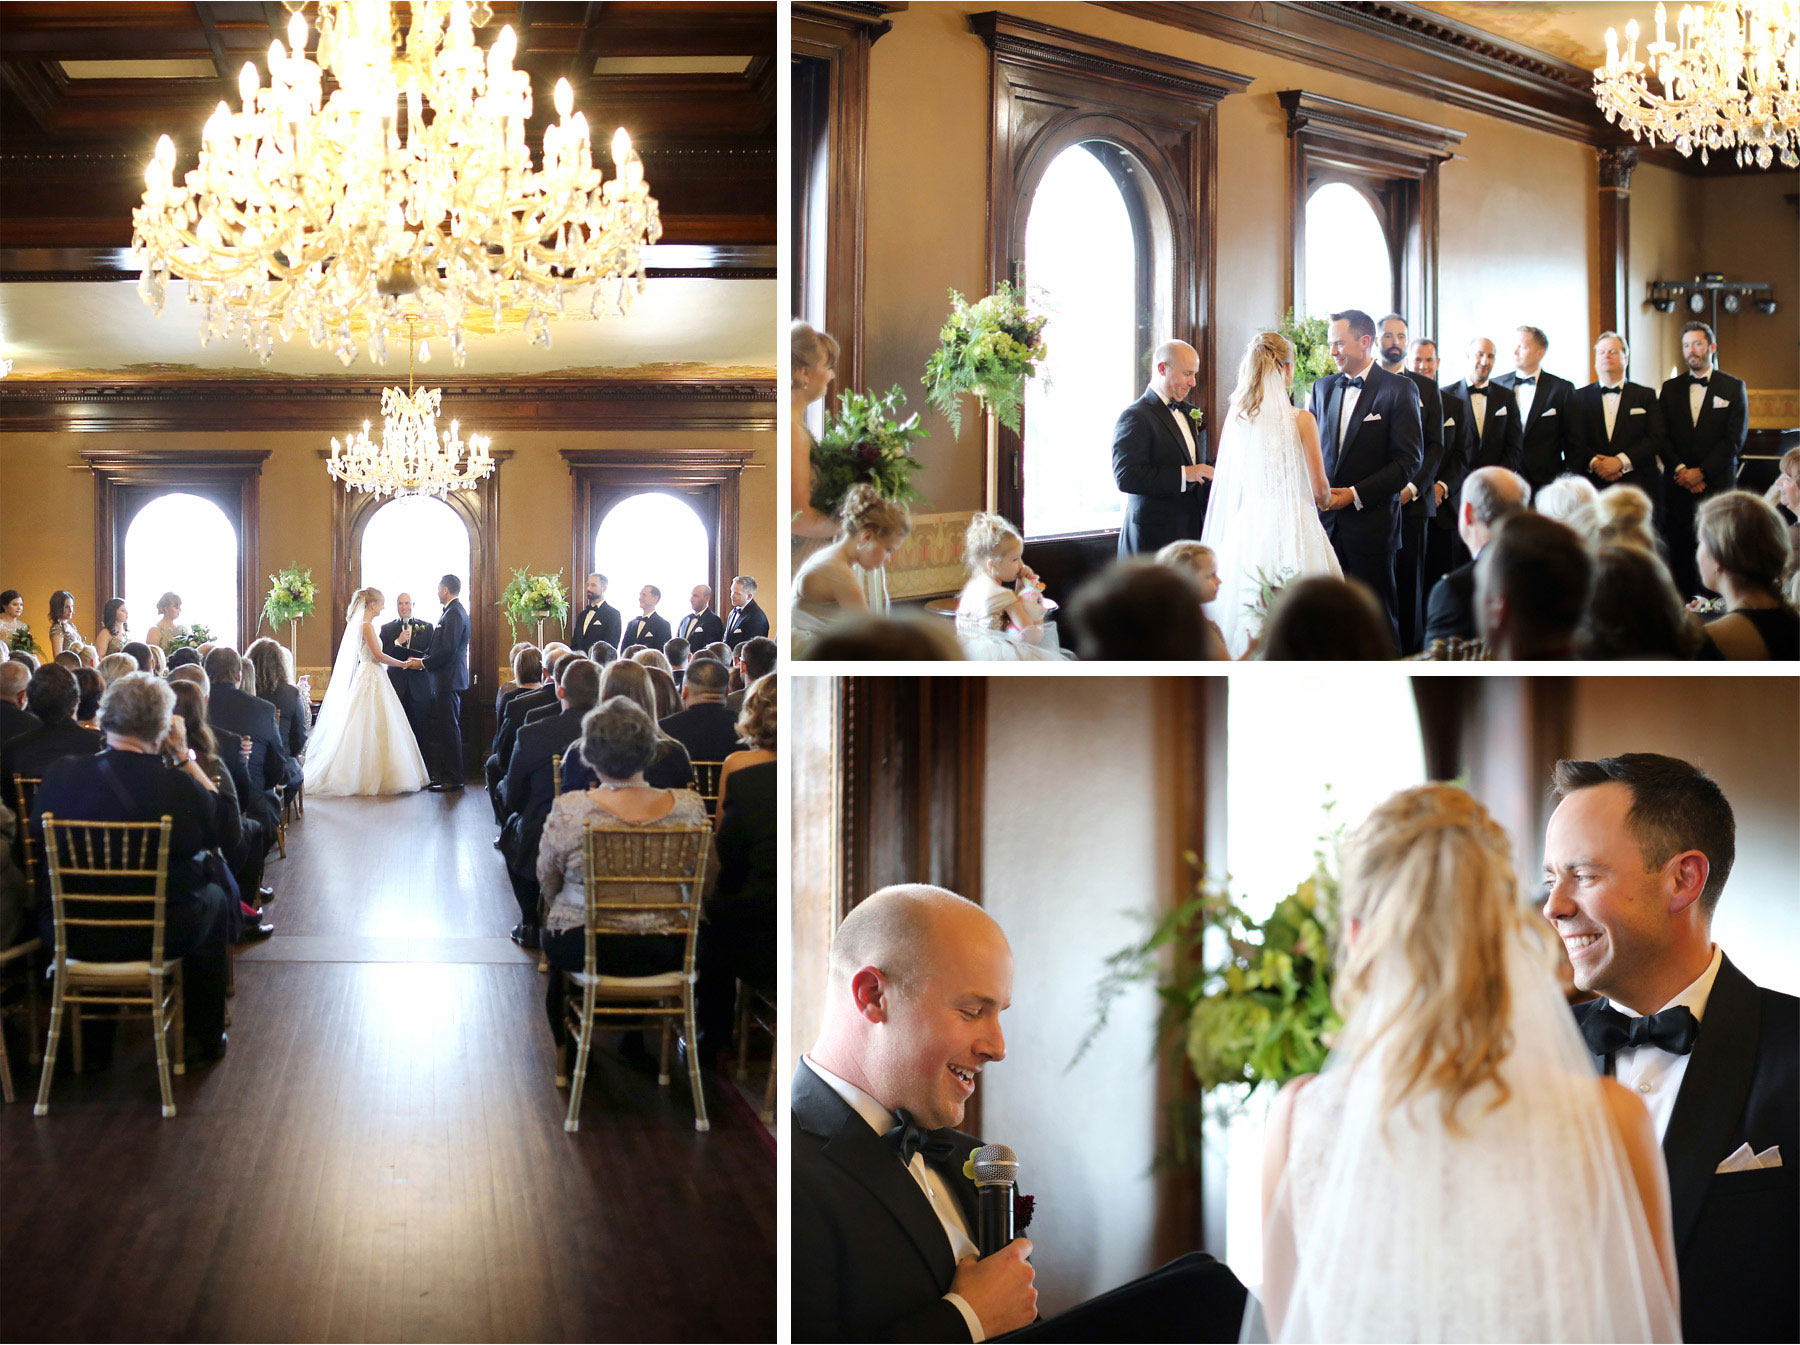 09-Minneapolis-Wedding-Photography-by-Vick-Semple-Mansion-Ceremony-Abby-and-Jason.jpg